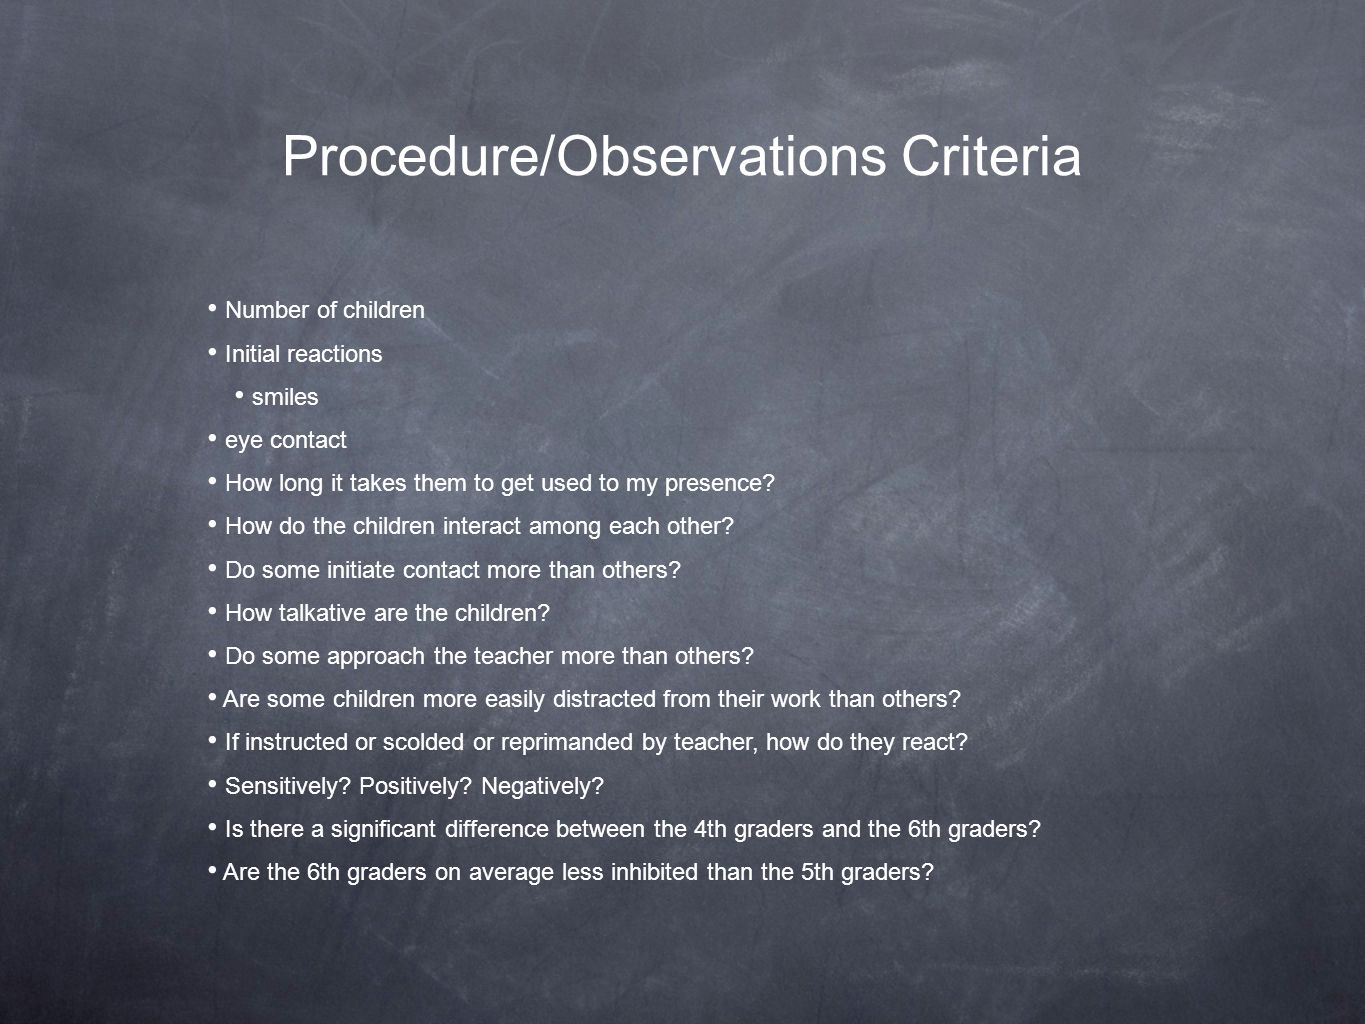 Procedure/Observations Criteria